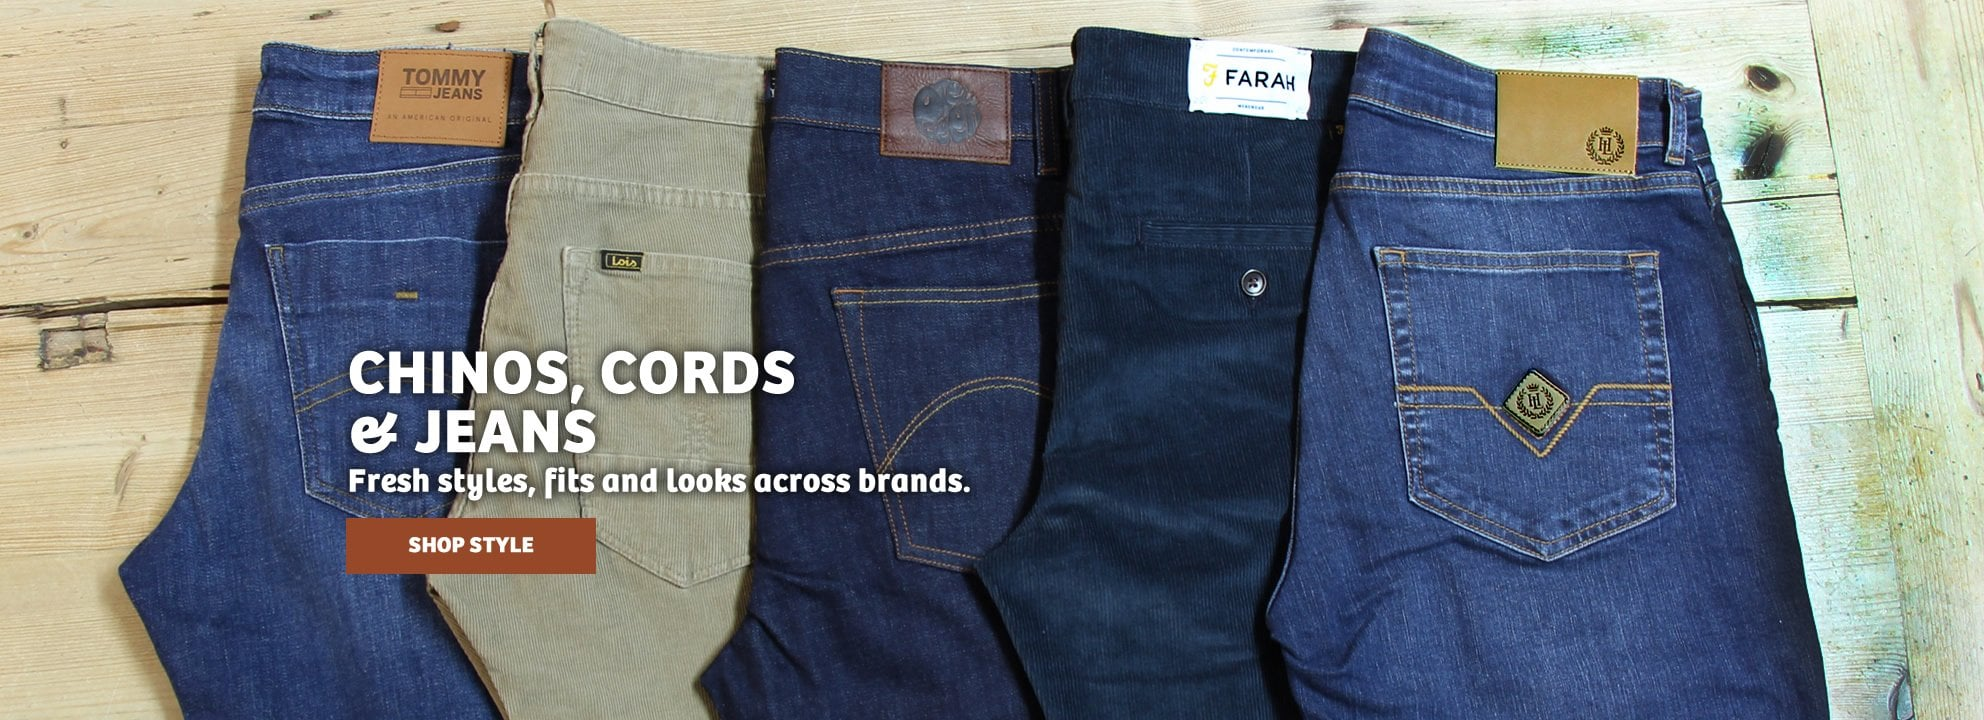 Chinos, Cords & Jeans